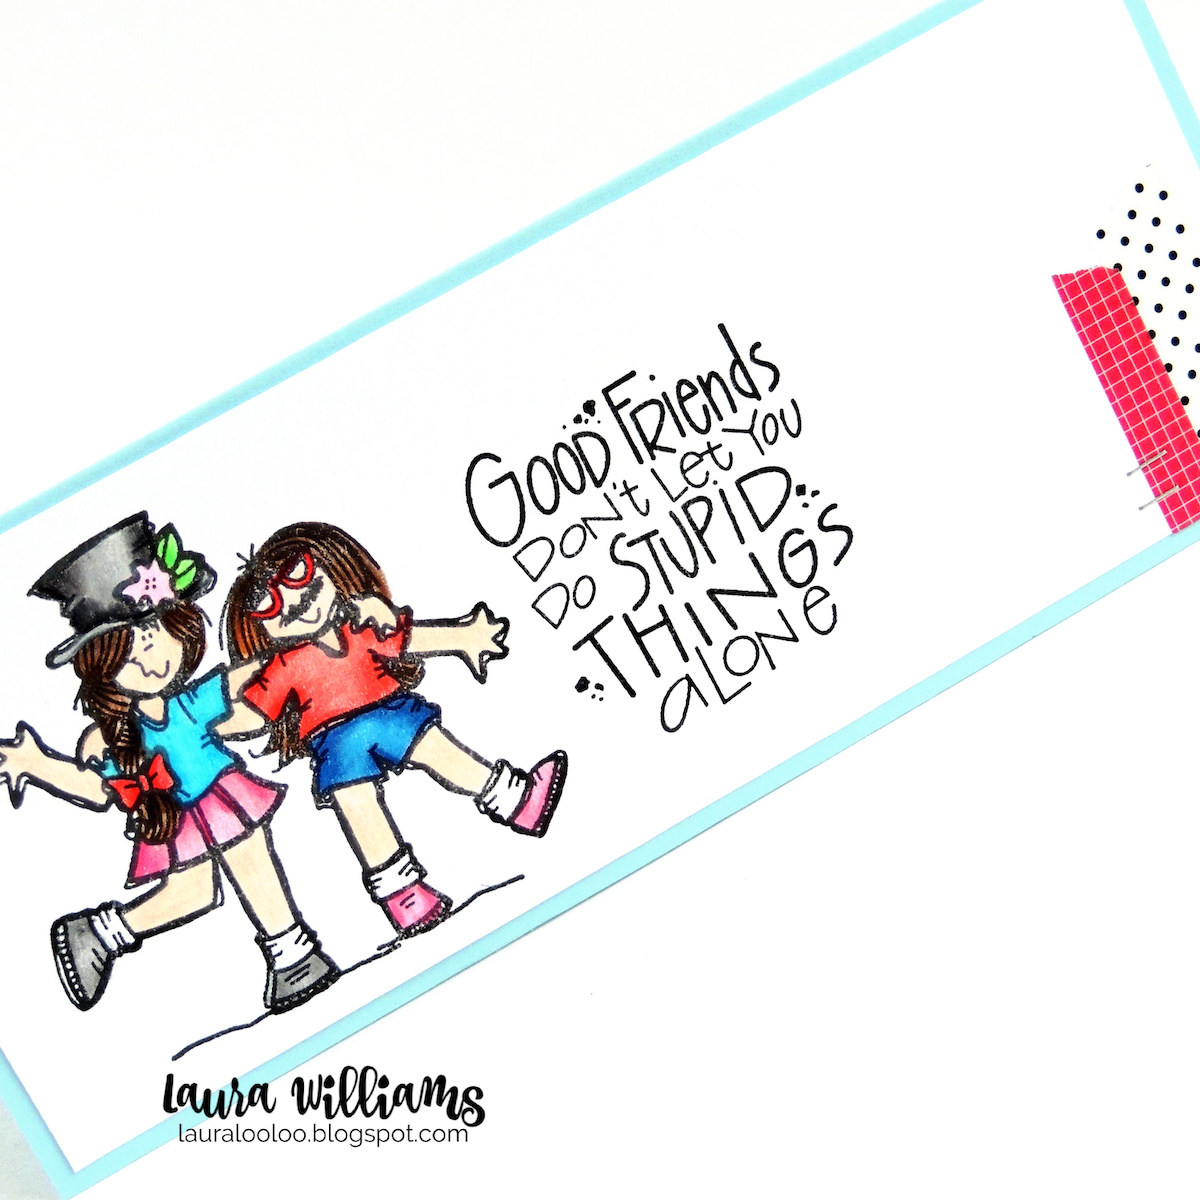 """A slimline card made just for the best friends in your life. Check out these fun new stamps from Impression Obsession for handmade cards and crafts. The sentiment says """"Good friends don't let you do stupid things alone"""" Stop by my blog to see more cards that are perfect for best friends!"""